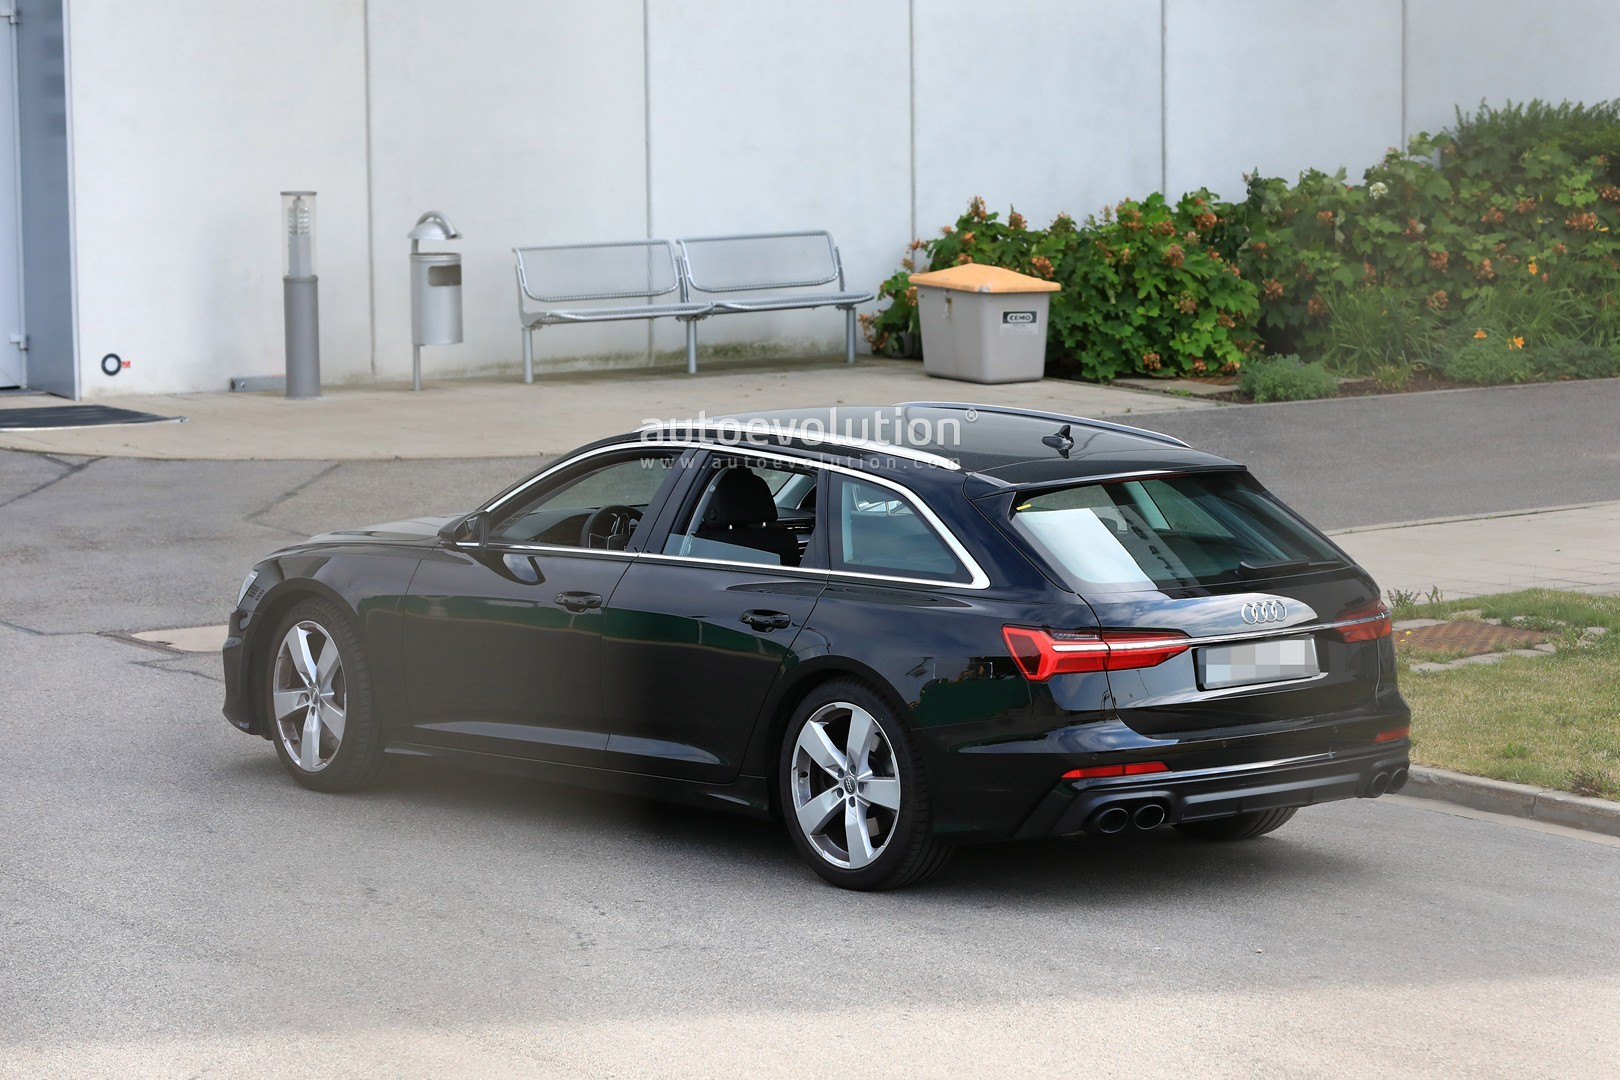 2017 - [Audi] A6 Berline & Avant [C8] - Page 10 2020-audi-s6-avant-spied-with-no-camo-looks-very-understated_9